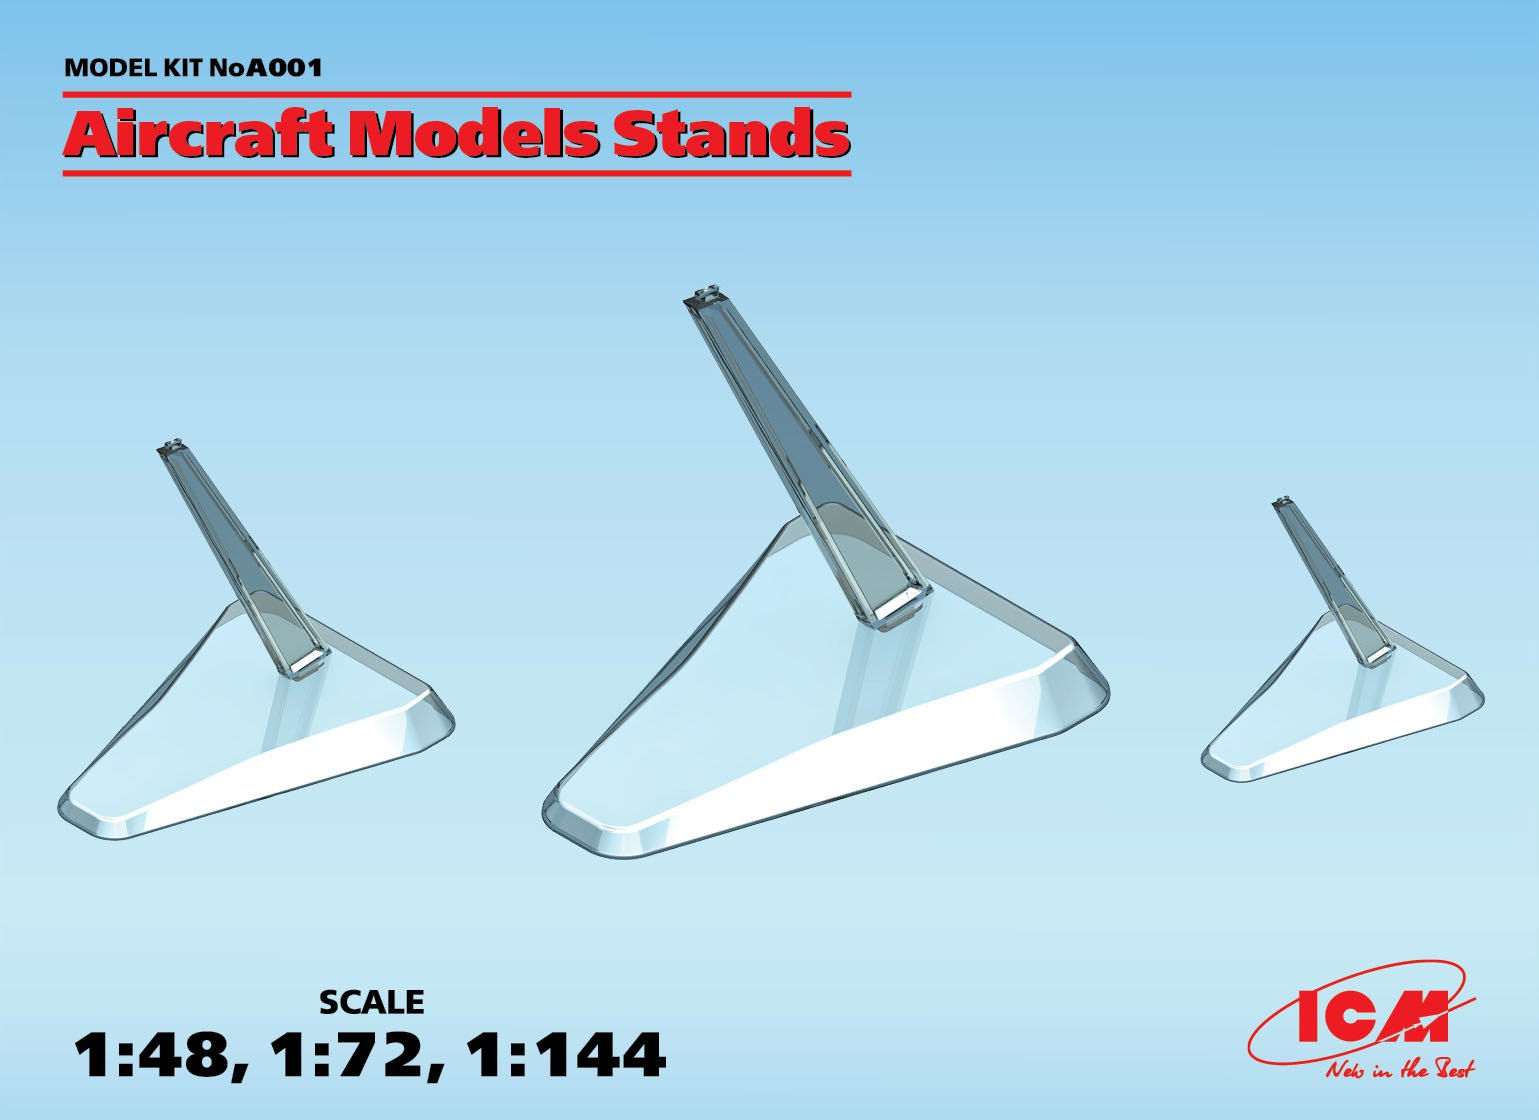 ICM Aircraft Models Stands (1:48, 1:72, 1:144)